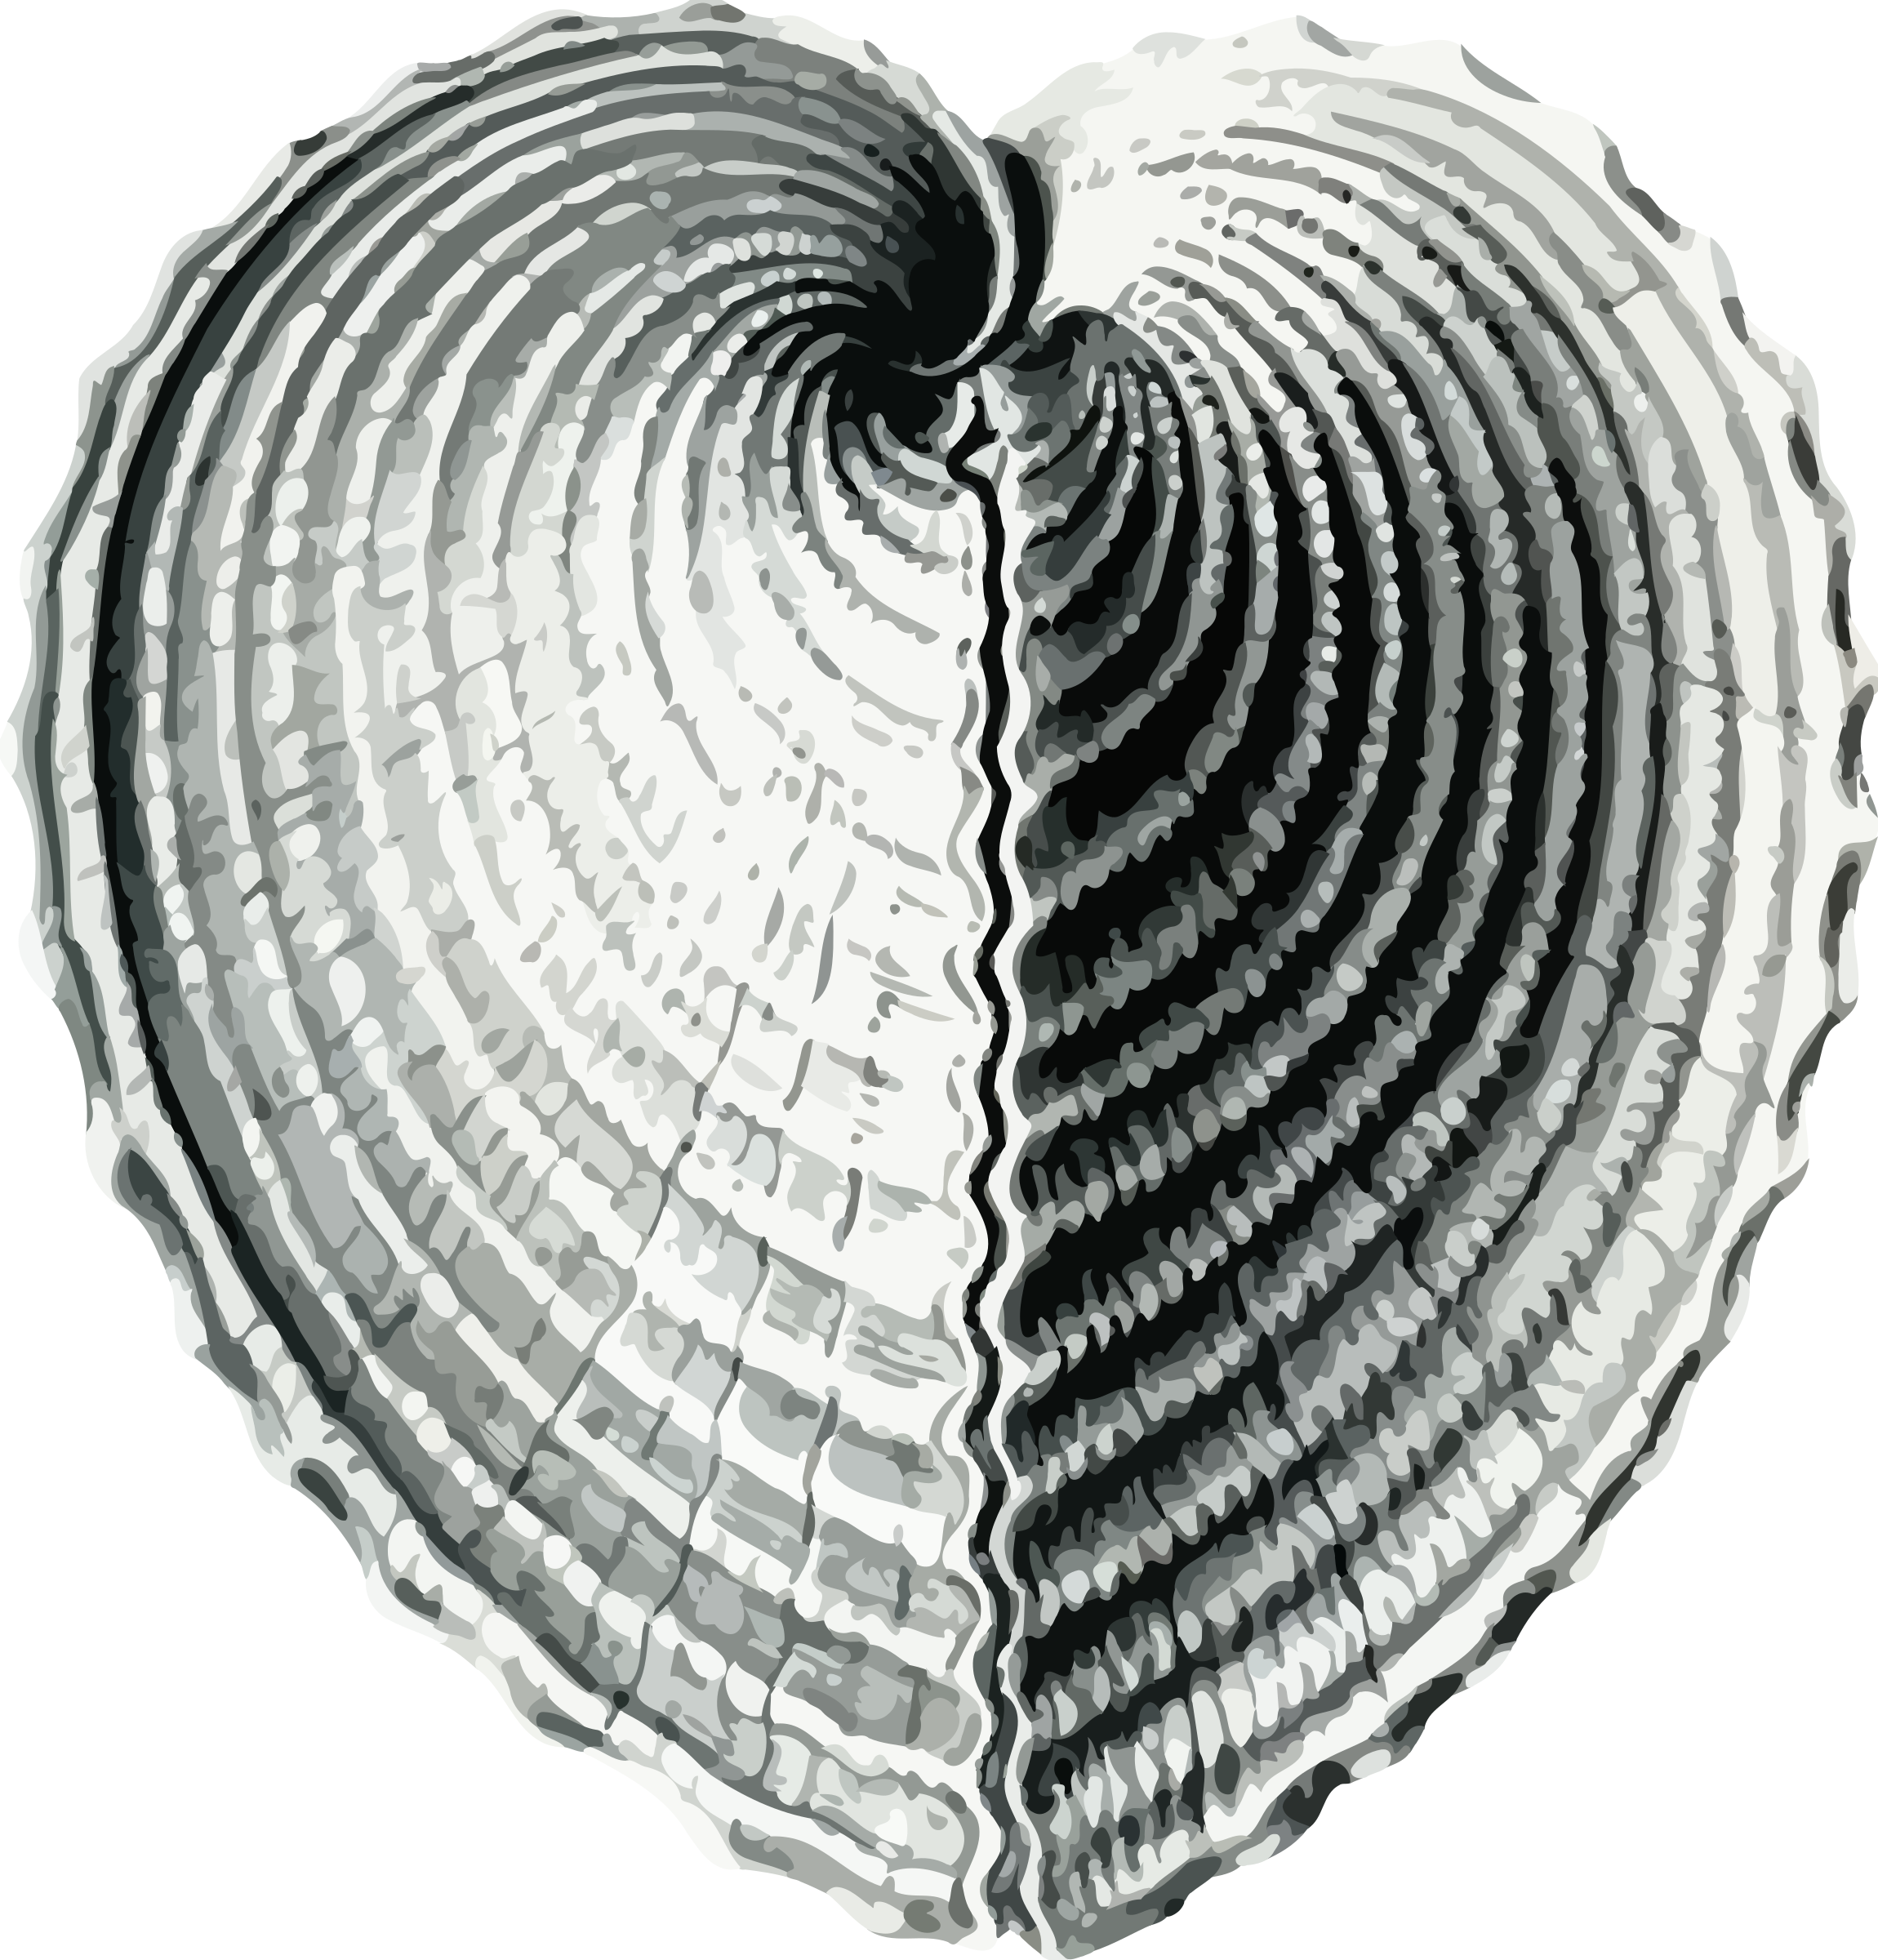 Bivalve 1 - heart cockle by Firkin